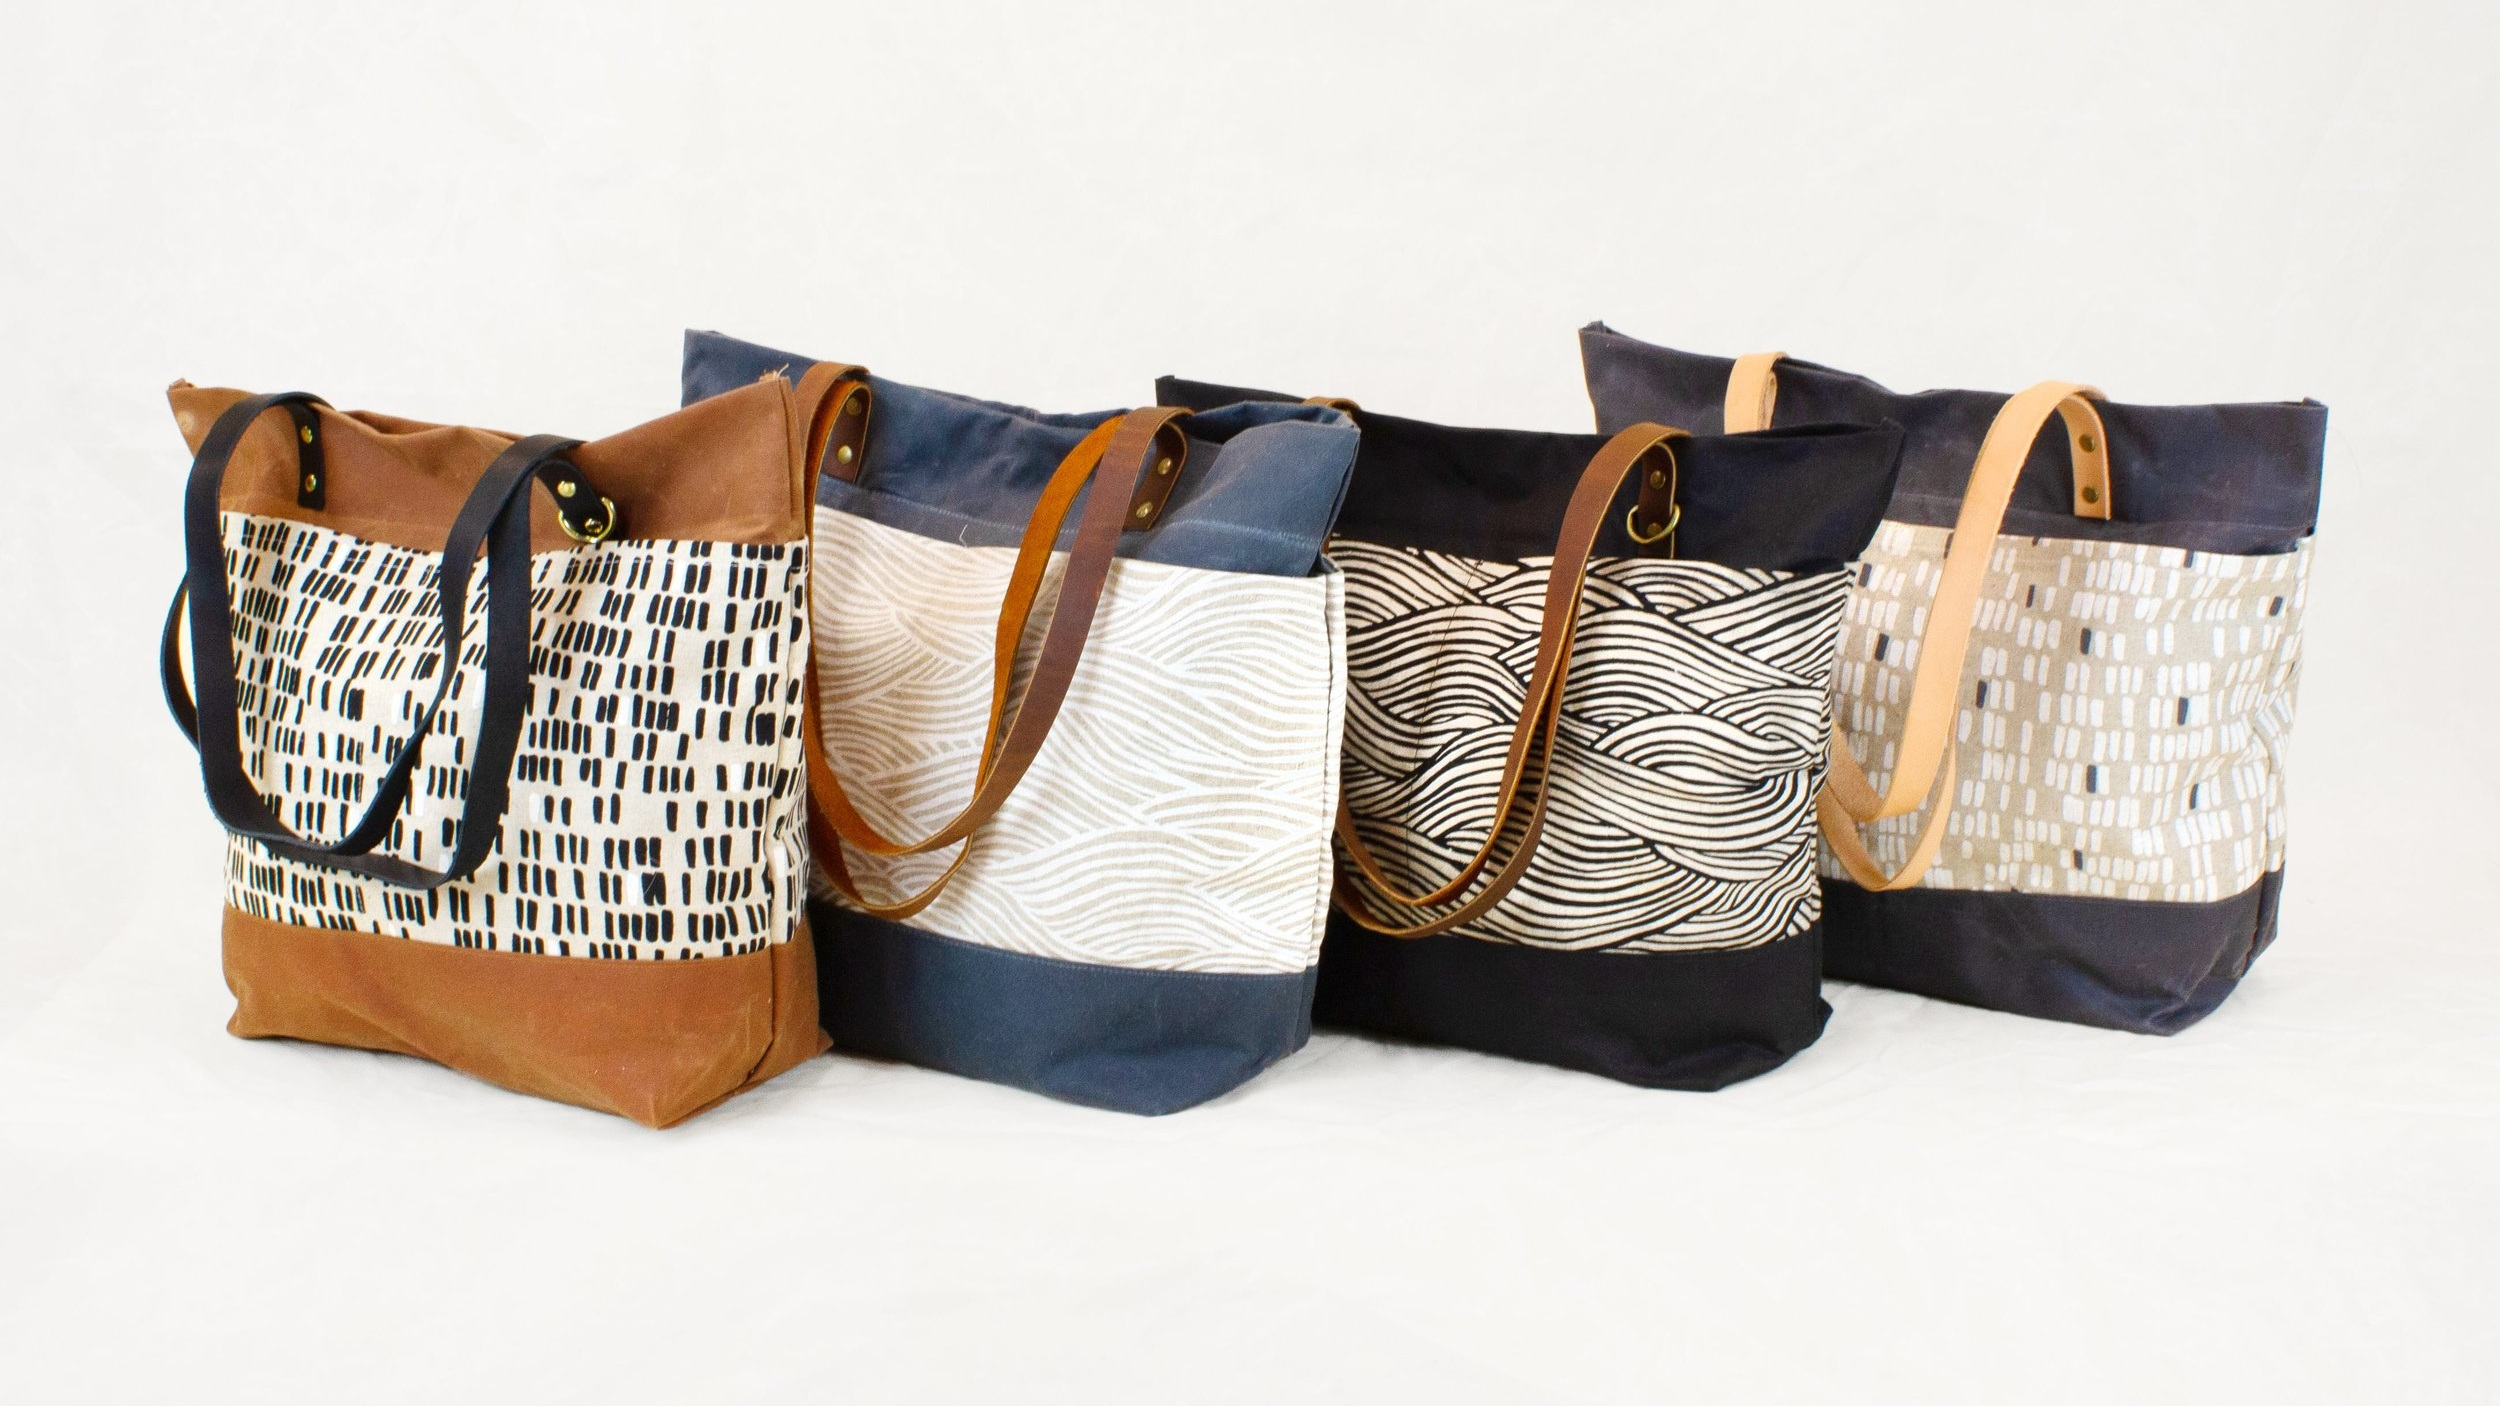 Limited Edition Oberlin Tote Maker Kits